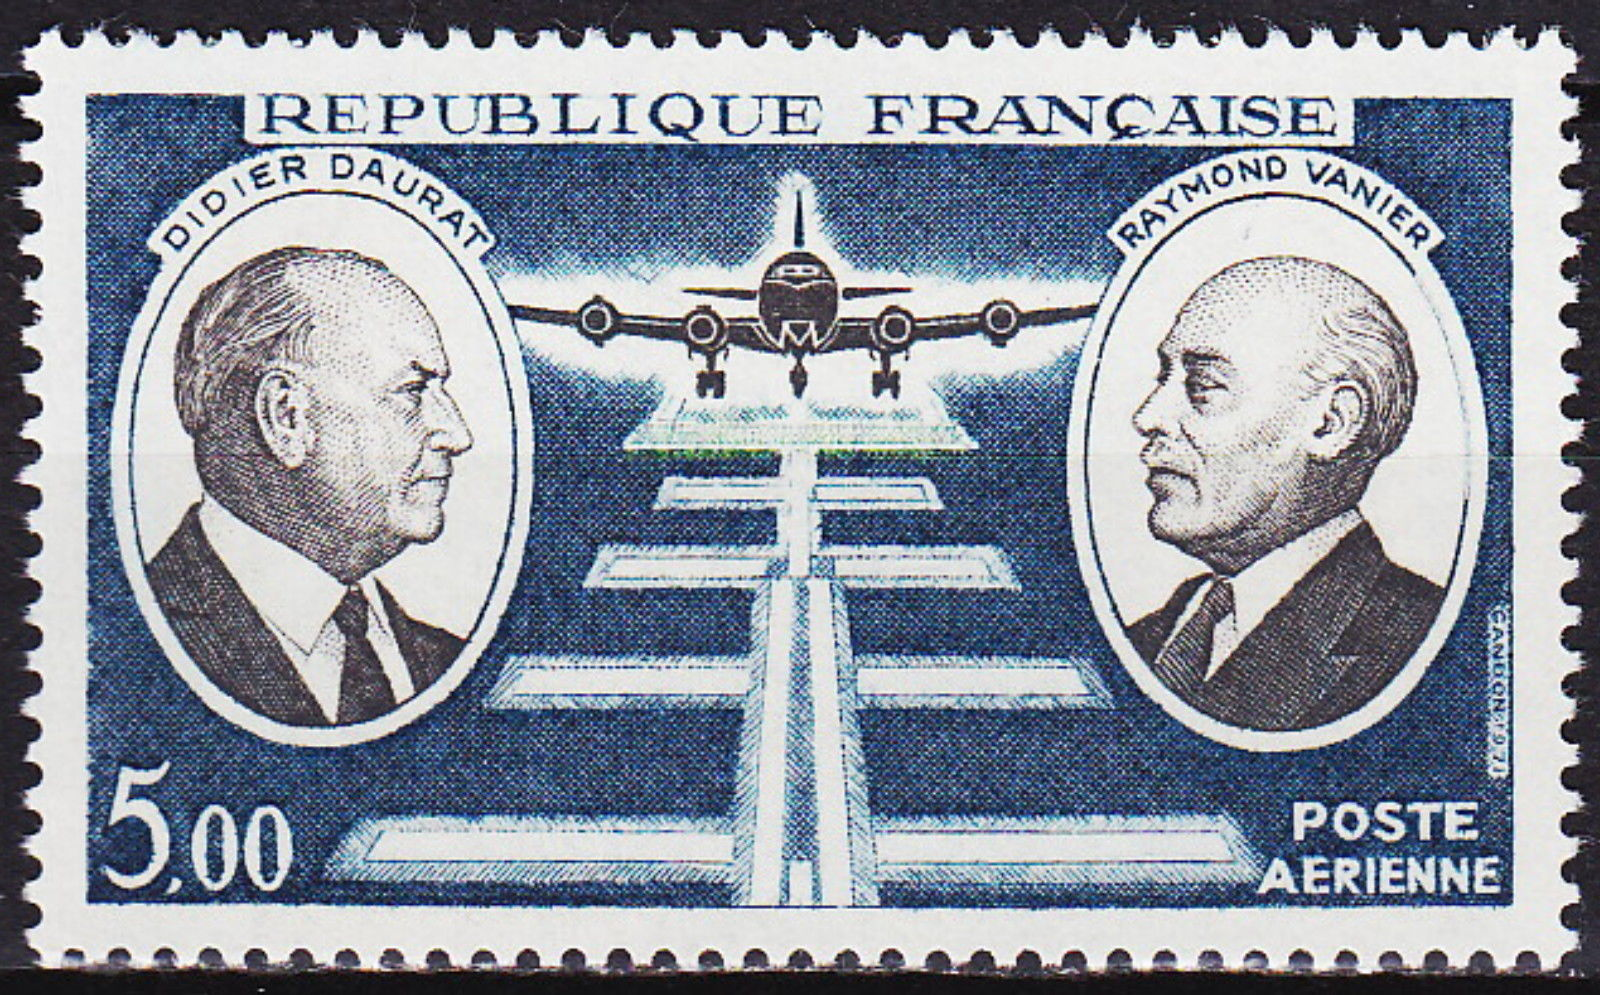 France 1971 Didier Daurat and Raymond Vanier Aviation Pioneers a.jpg